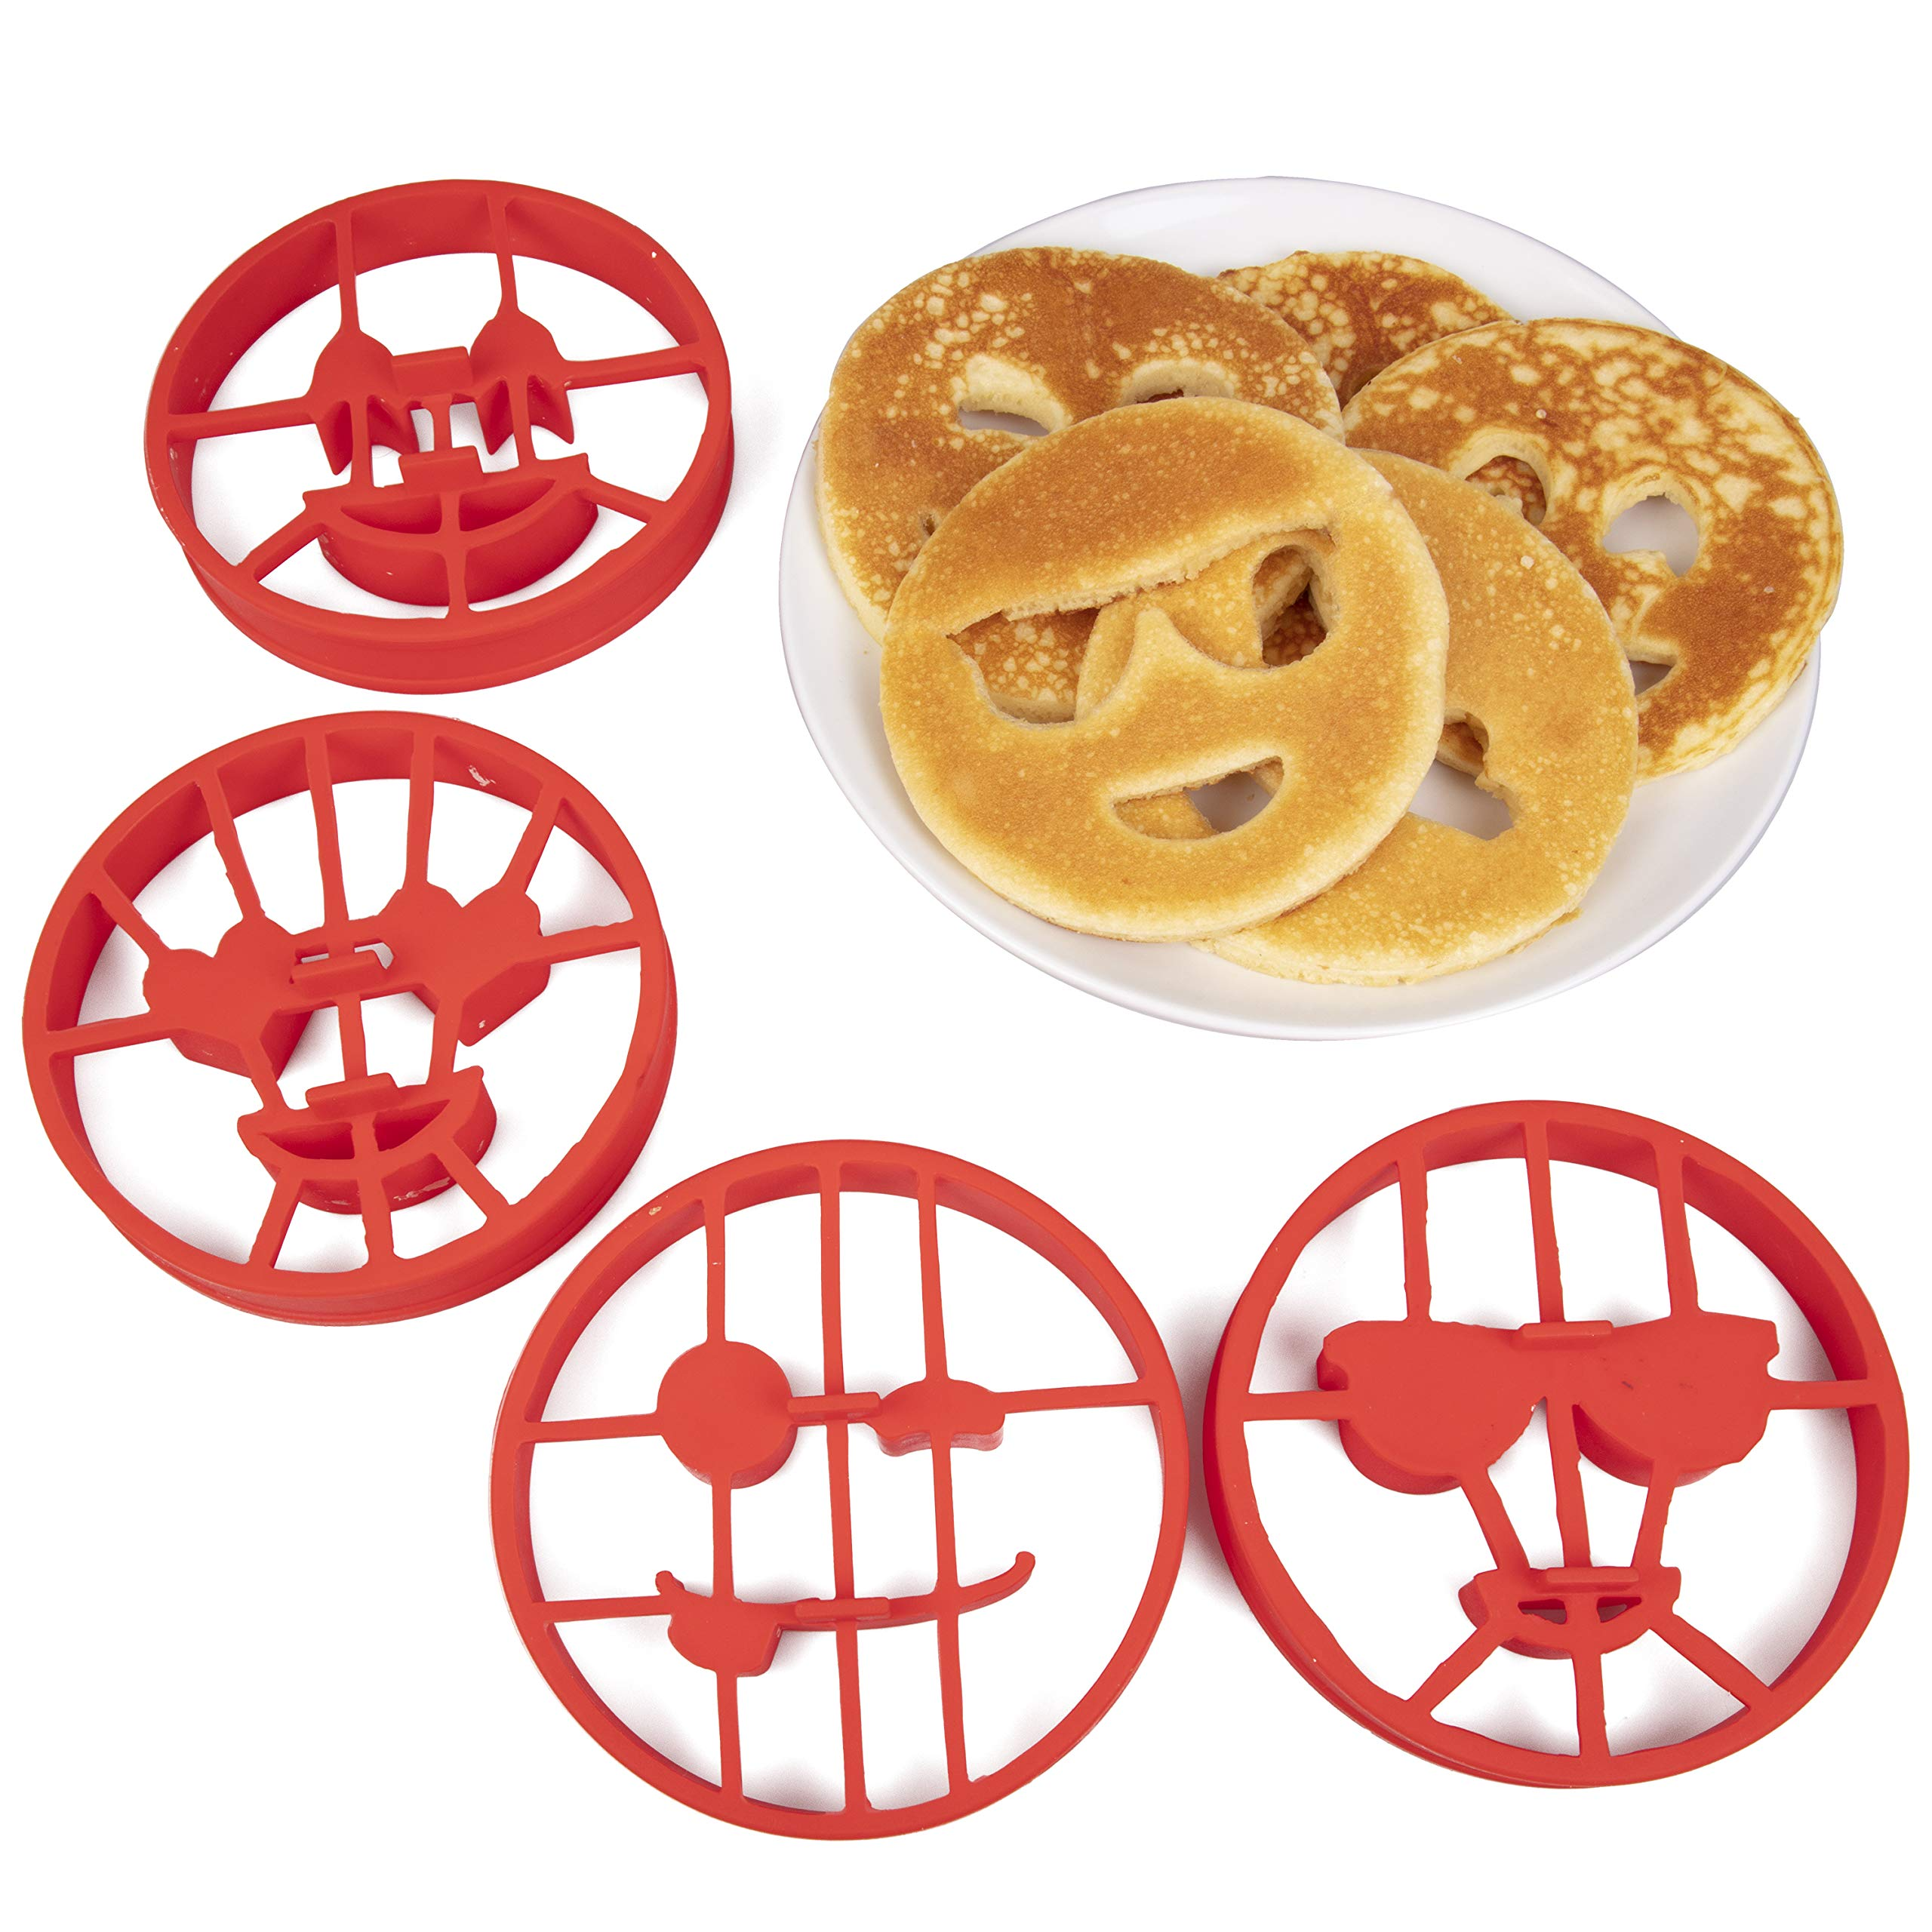 Emoji Pancake Molds and Egg Rings (4 Pack) for Kids AND Adults - Reusable Silicone Smiley Face Maker Doubles as Cookie Maker Set- FDA Approved, BPA Free, Food Safe, Heat Resistant Silicone by Good Cooking (Image #1)